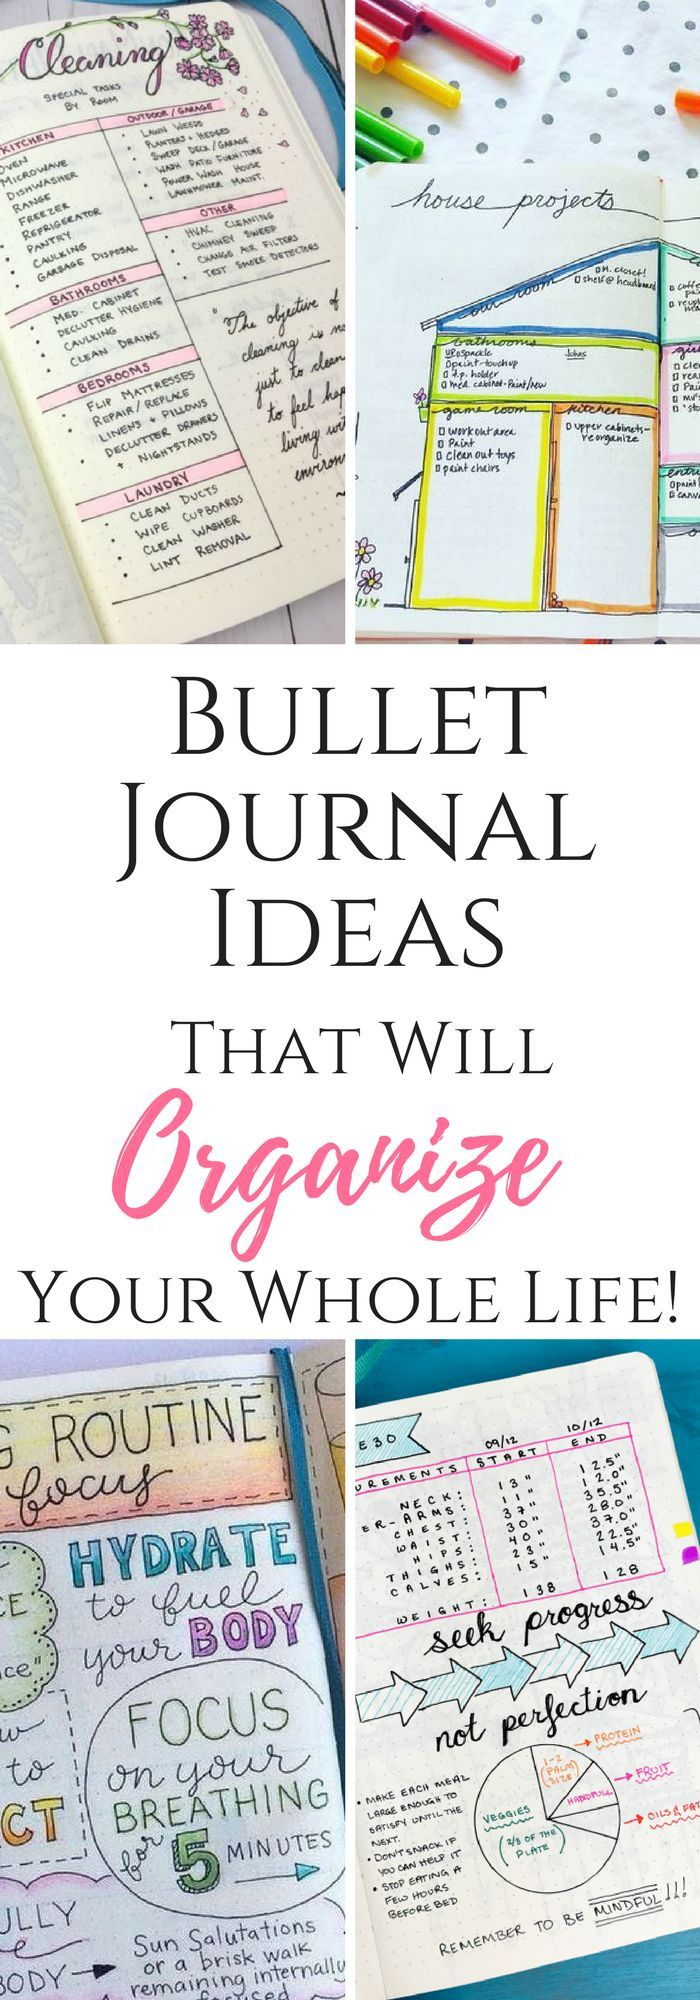 Bullet Journals and ideas that can organize your entire life! #organizing